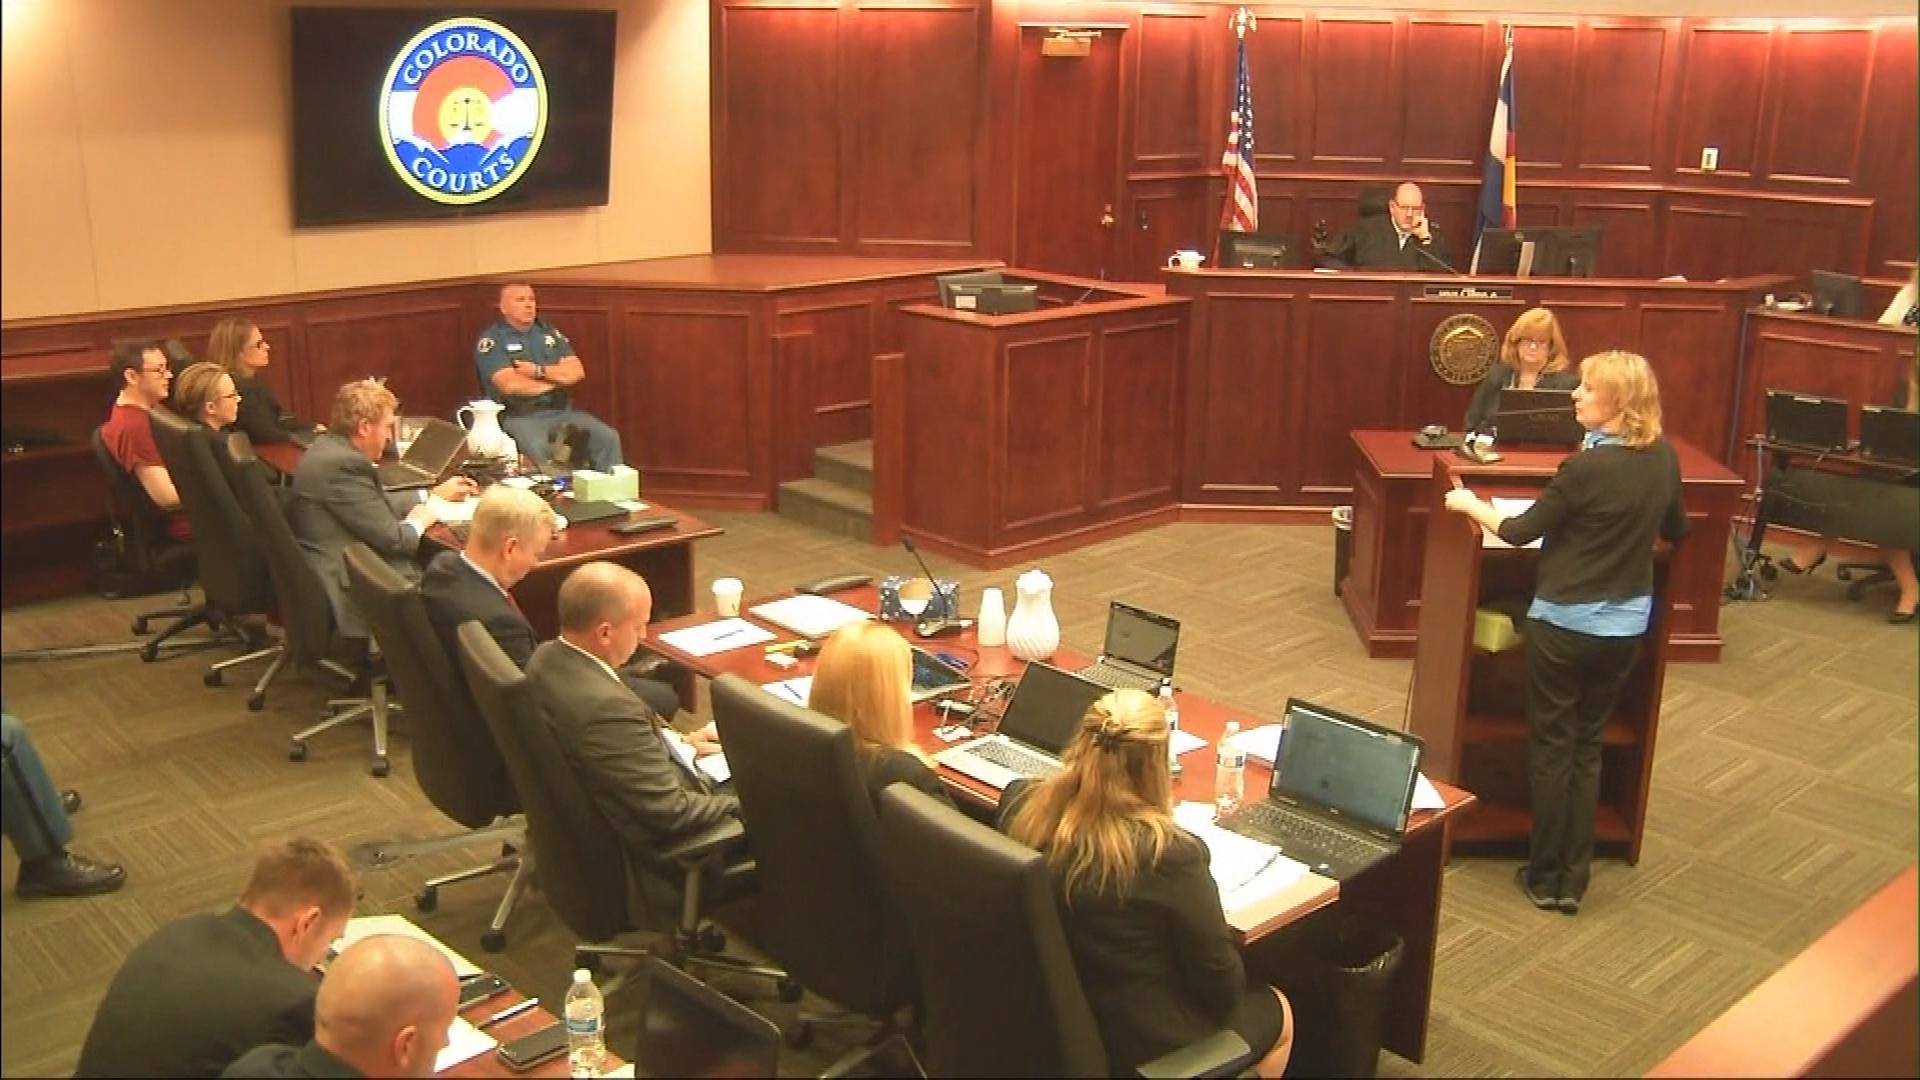 An image from the courtroom during the sentencing hearing on Aug. 24, 2015 (credit: CBS)